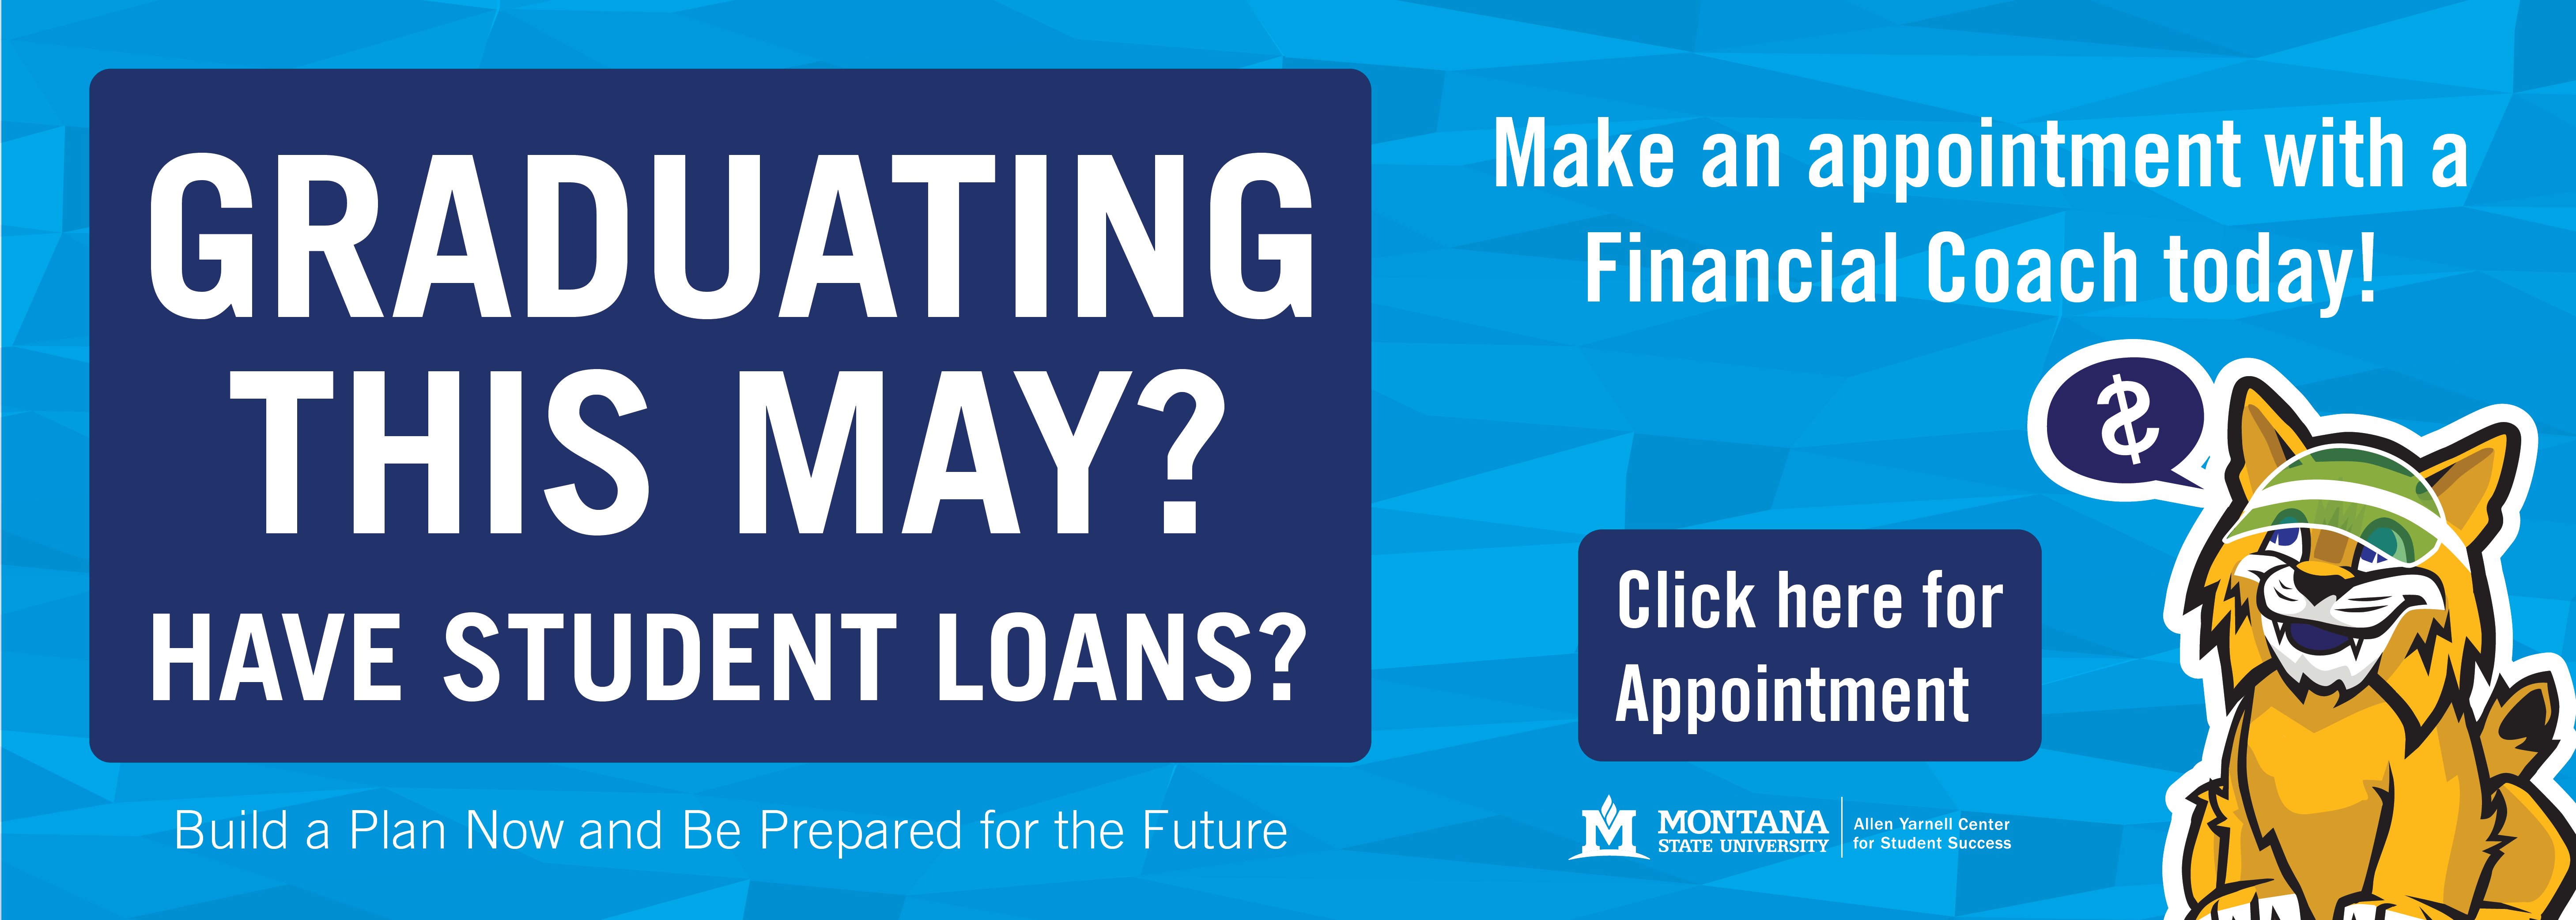 Graduating this May? Have student loans? Make an appointment with a financial coach today. Click here for appointment